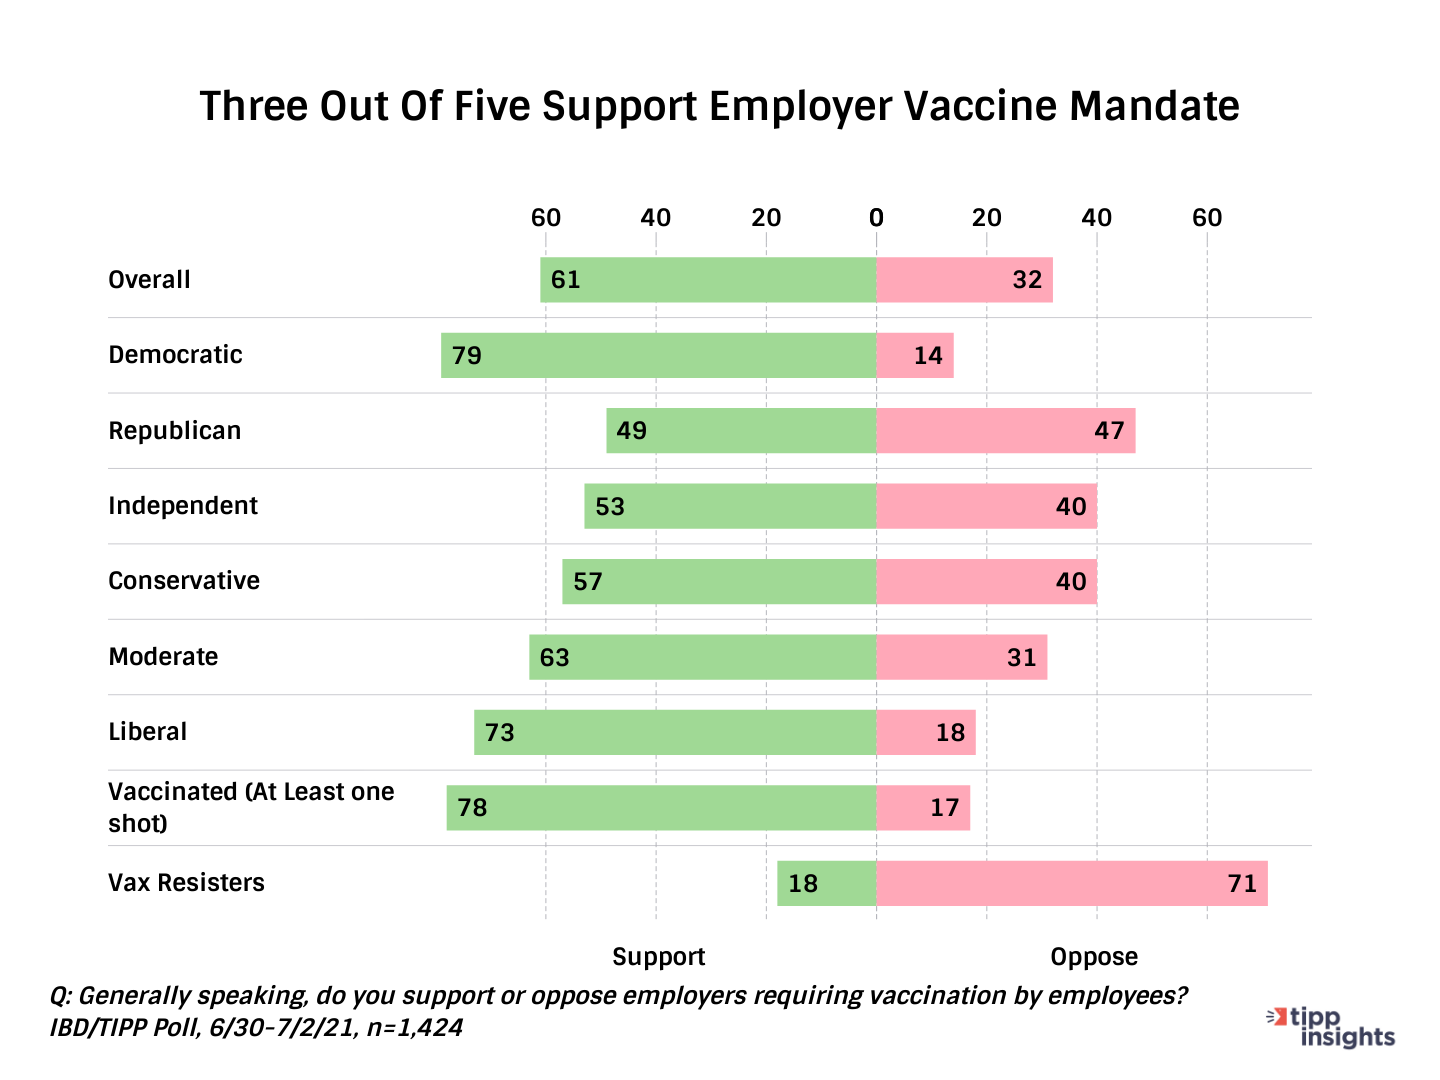 TIPP Poll Results, three out of five support Employer mandate by party and ideology